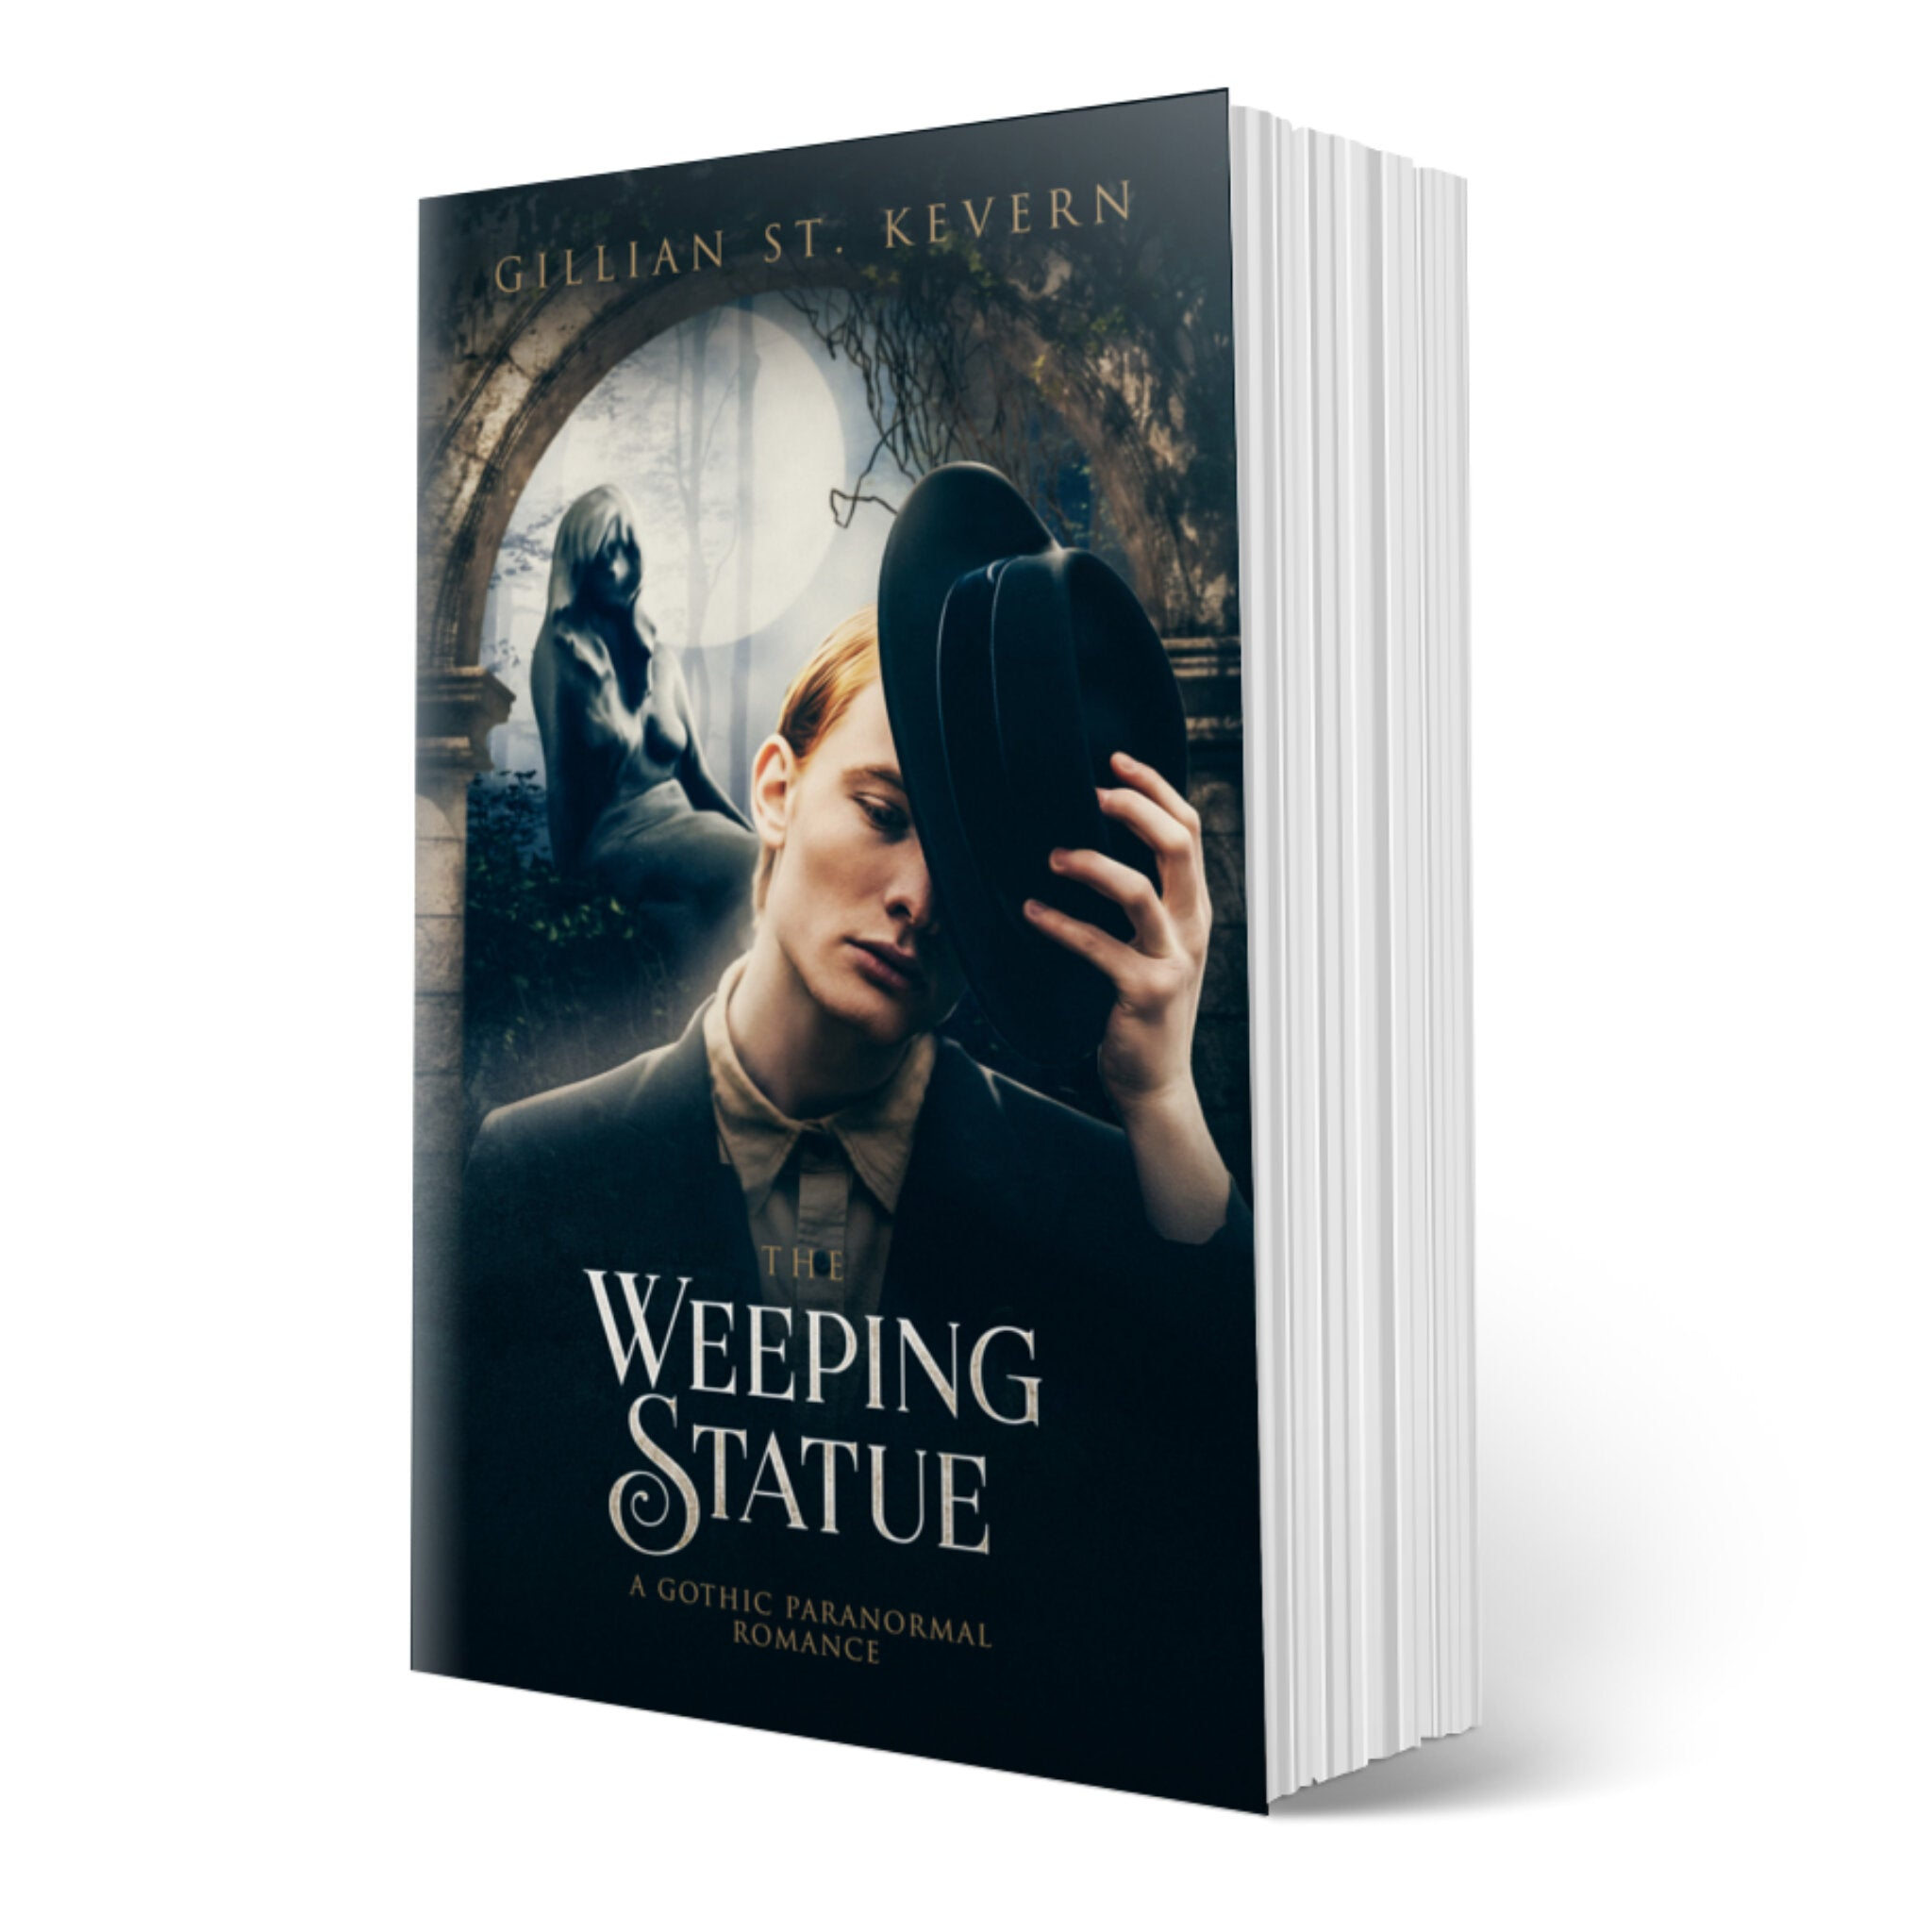 The Weeping Statue cover: A pale young man with red hair wearing a somber suit is in the act of removing his hat. His expression is mournful. Behind him, the stone statue of a woman is illuminated by the full moon, bathing the forest in an eerie glow.